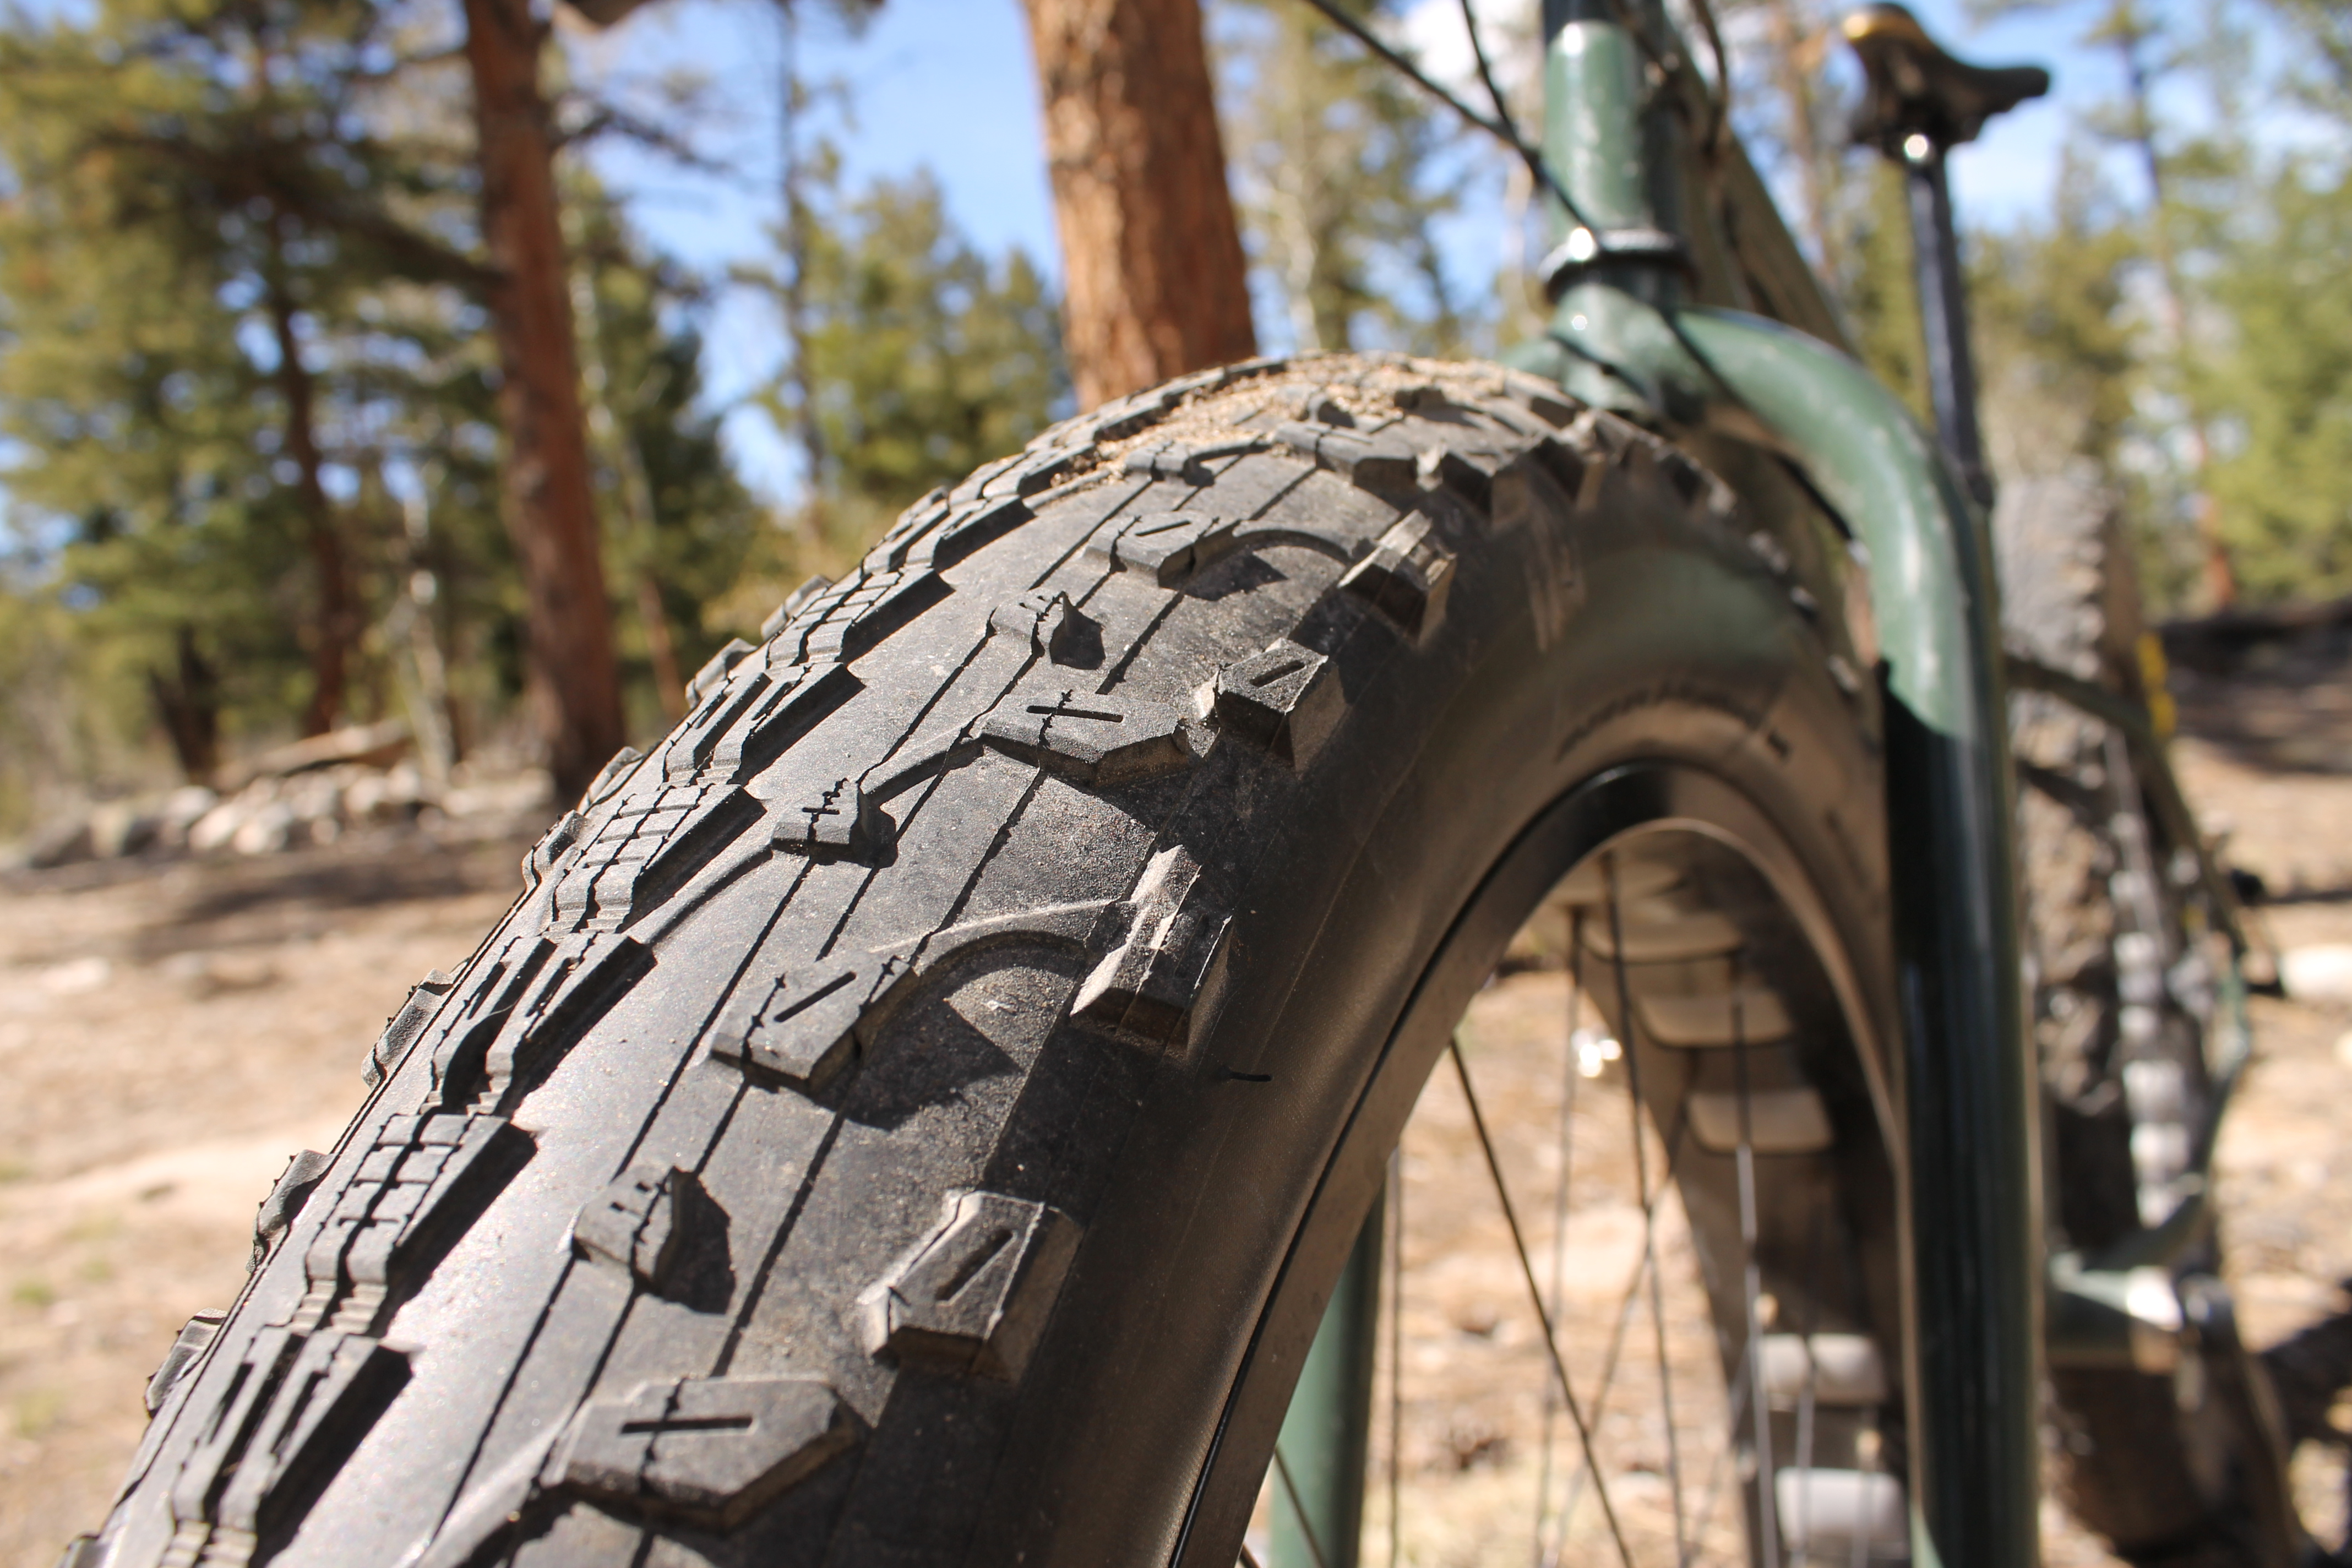 Maxxis Mammoth 4 Quot Fat Bike Tire Review Singletracks Mountain Bike News